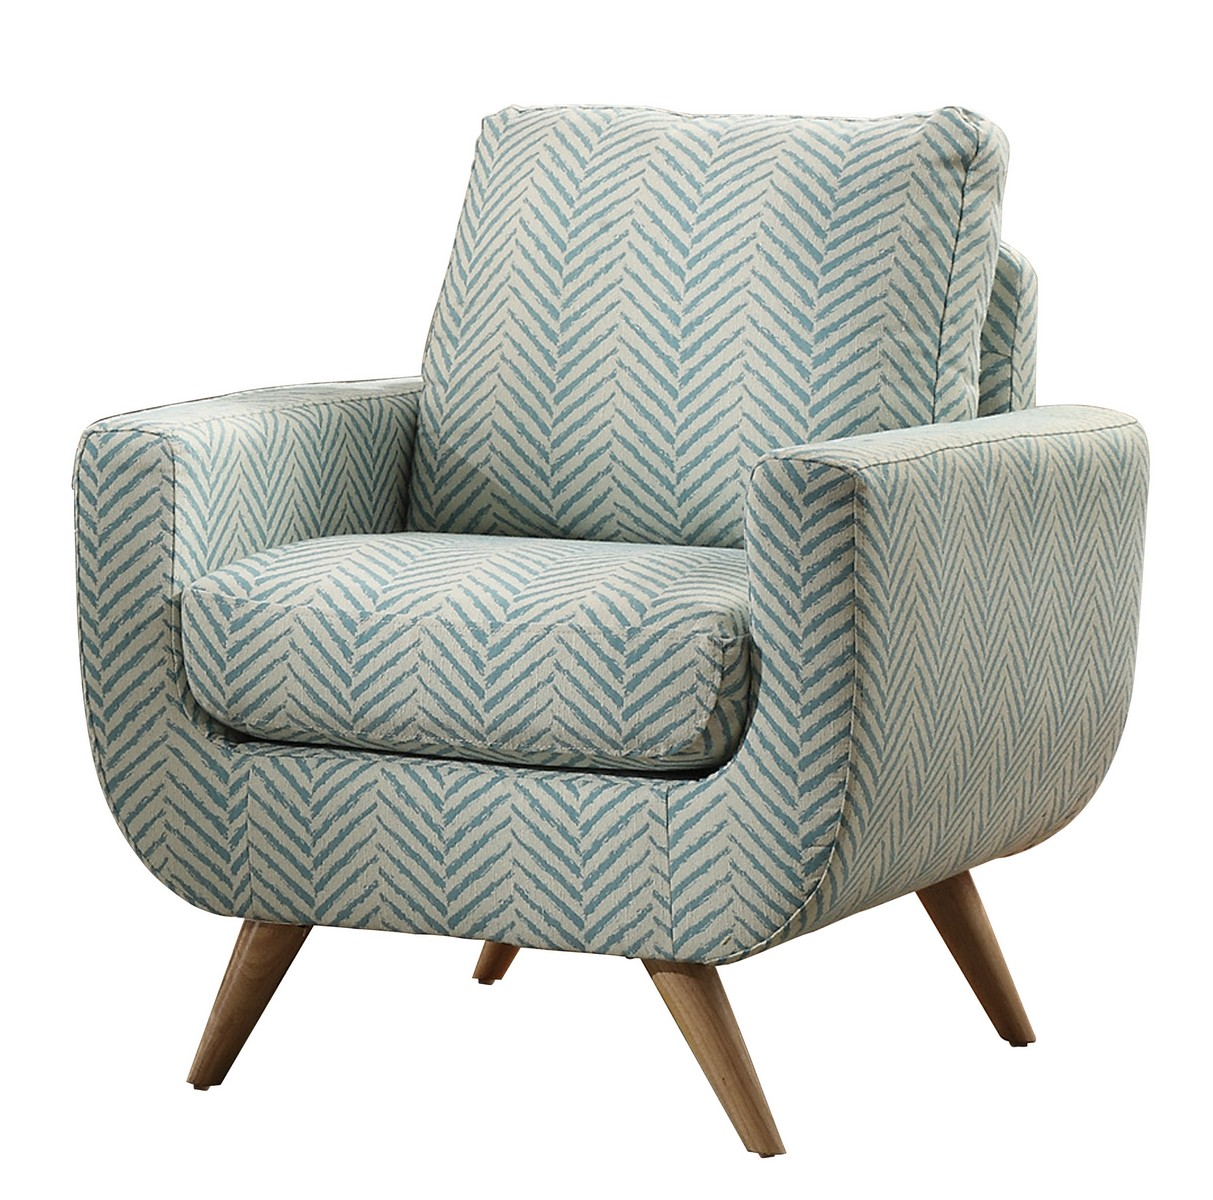 Homelegance Deryn Accent Chair Polyester Teal 8327tl 1s At Homelement Com